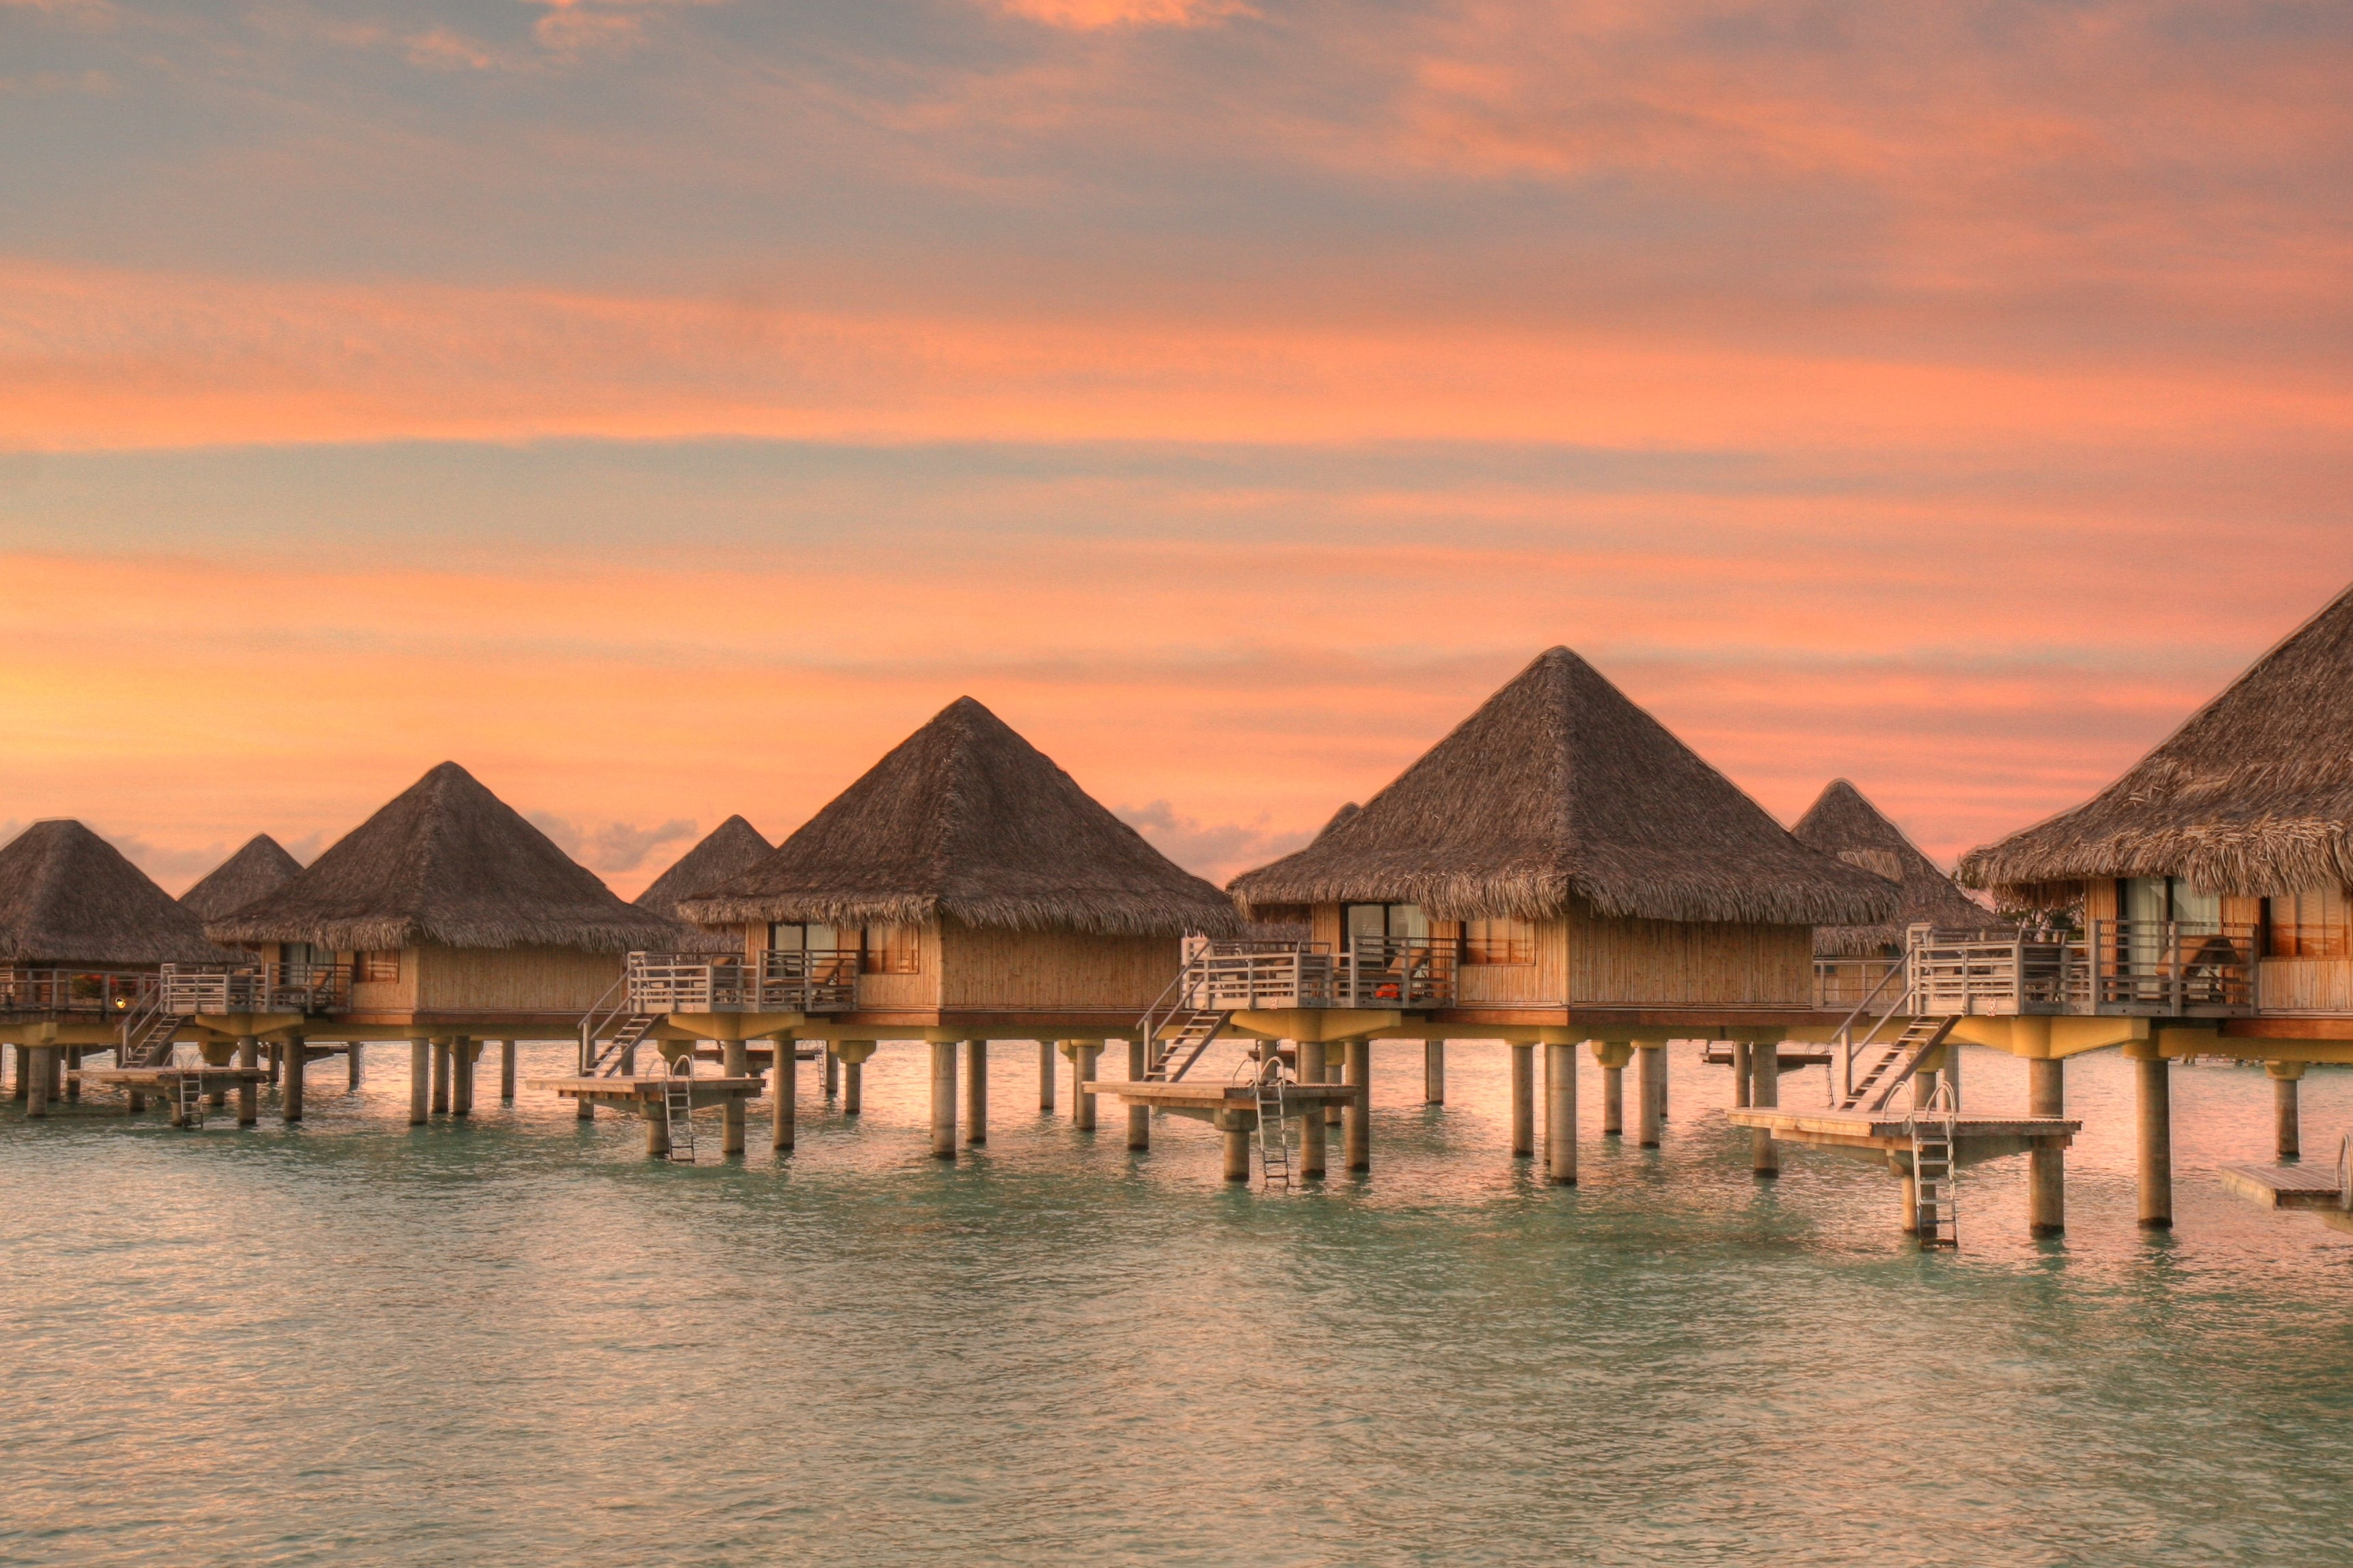 Where to go on holiday - make a water bungalow your accommodation of choice in Bora Bora I Pic SF Brit